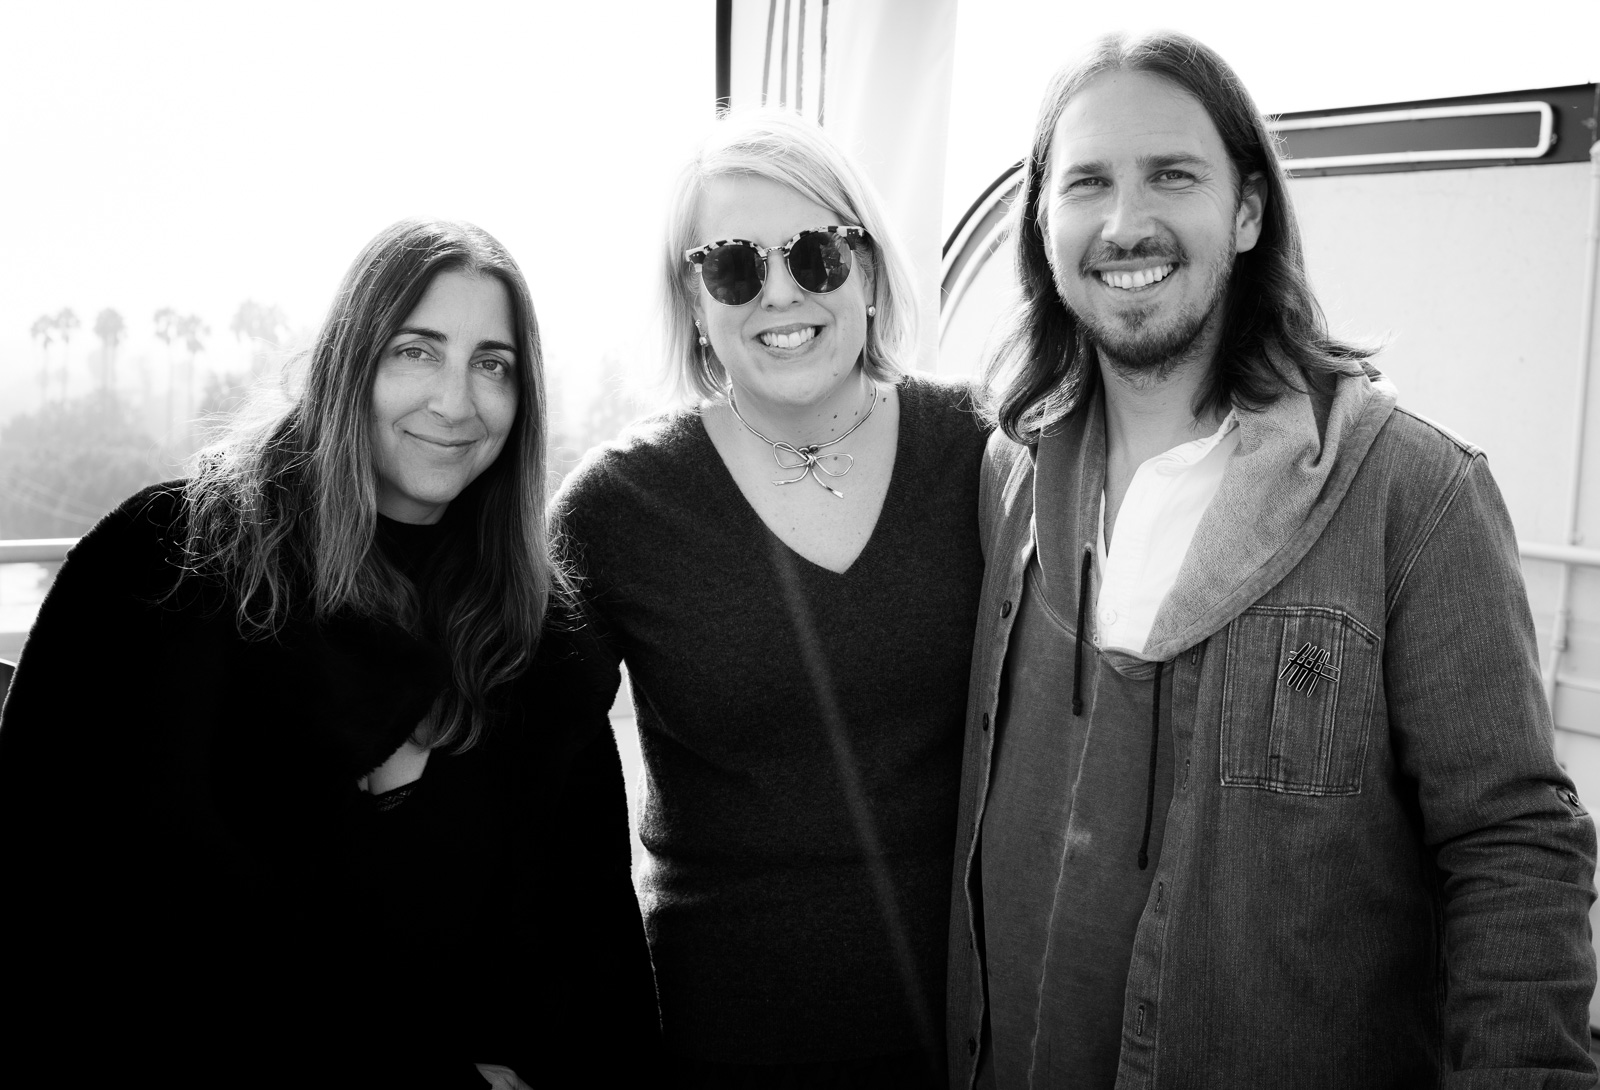 A.L.C. founder Andrea Lieberman, The Hollywood Reporter Fashion Editor Booth Moore and NJAL founder Stefan Siegel at the Launch of NOT JUST A LABEL's Authentic Radicalism at NeueHouse Hollywood on December 13, 2016 in Los Angeles, California.